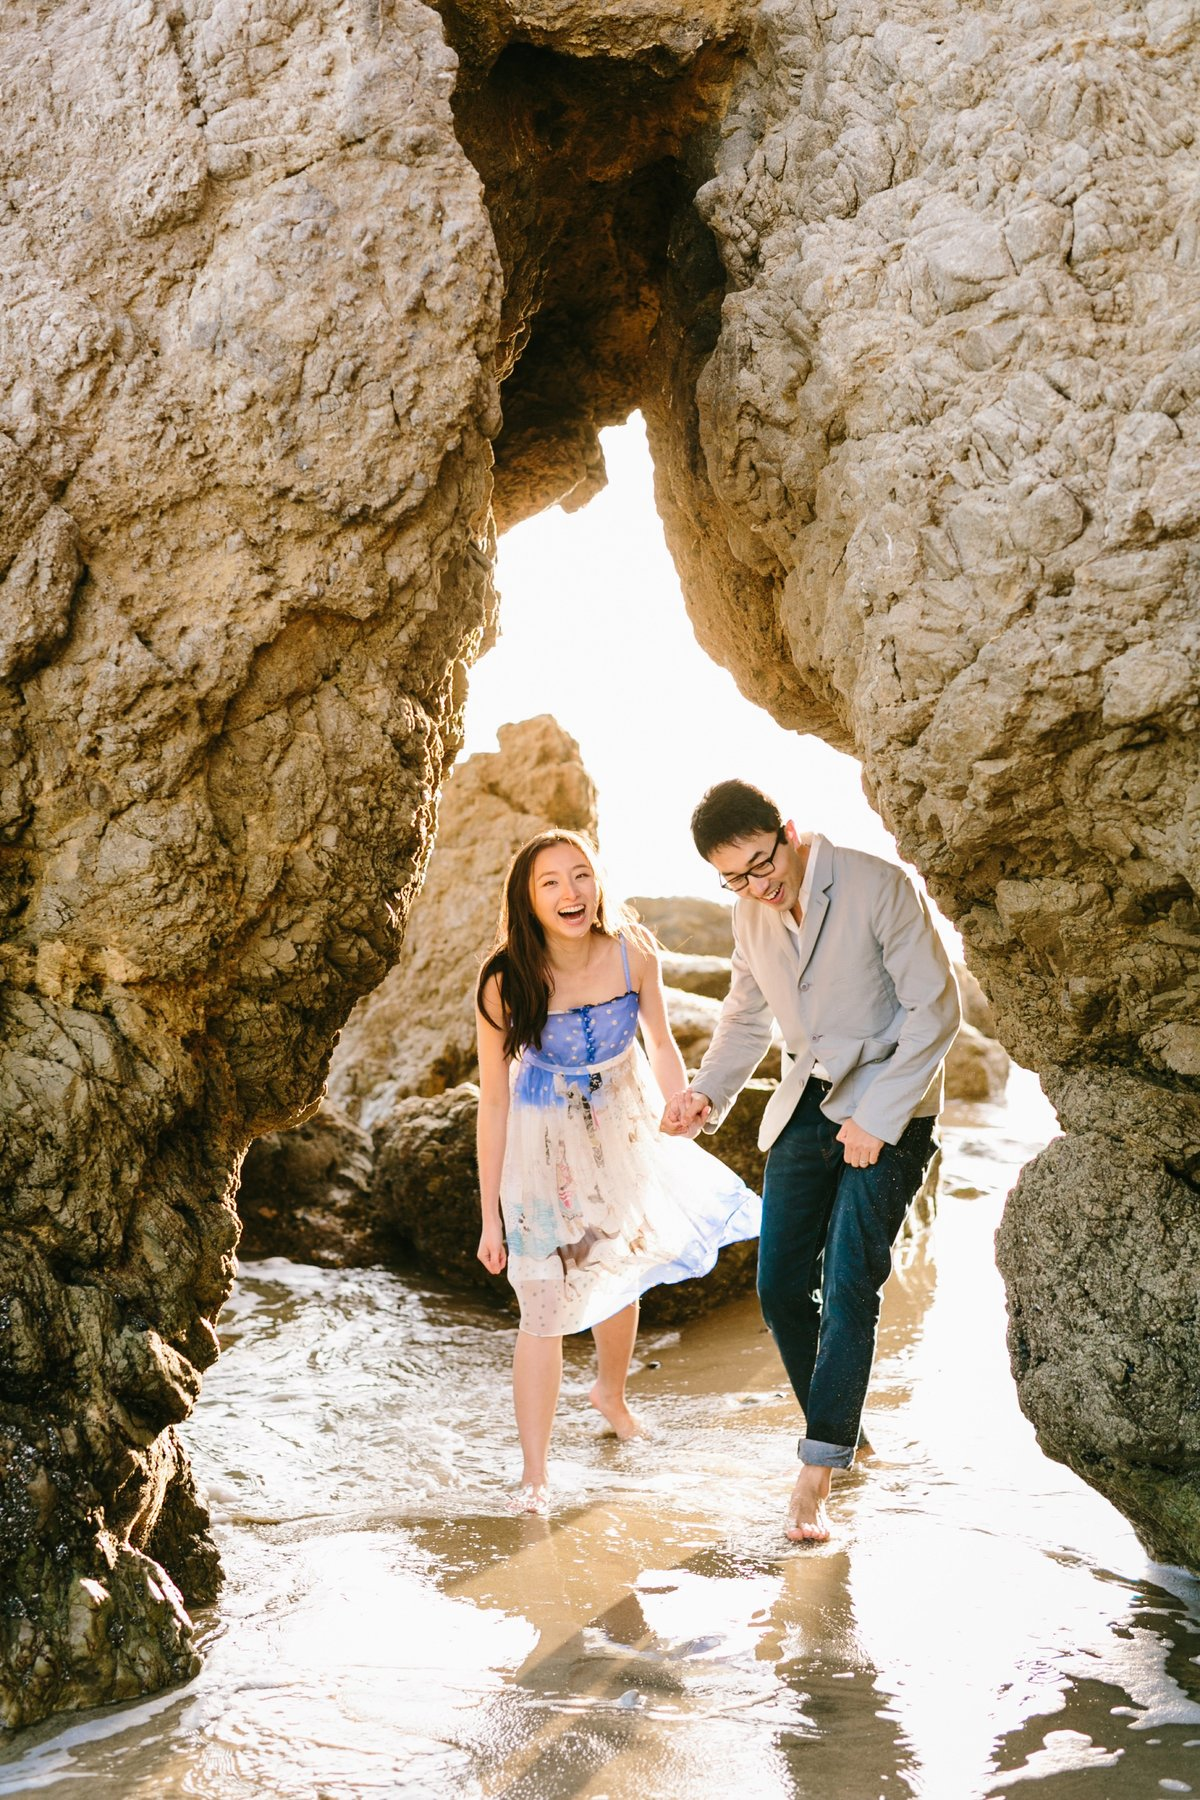 Best California Engagement Photographer-Jodee Debes Photography-200